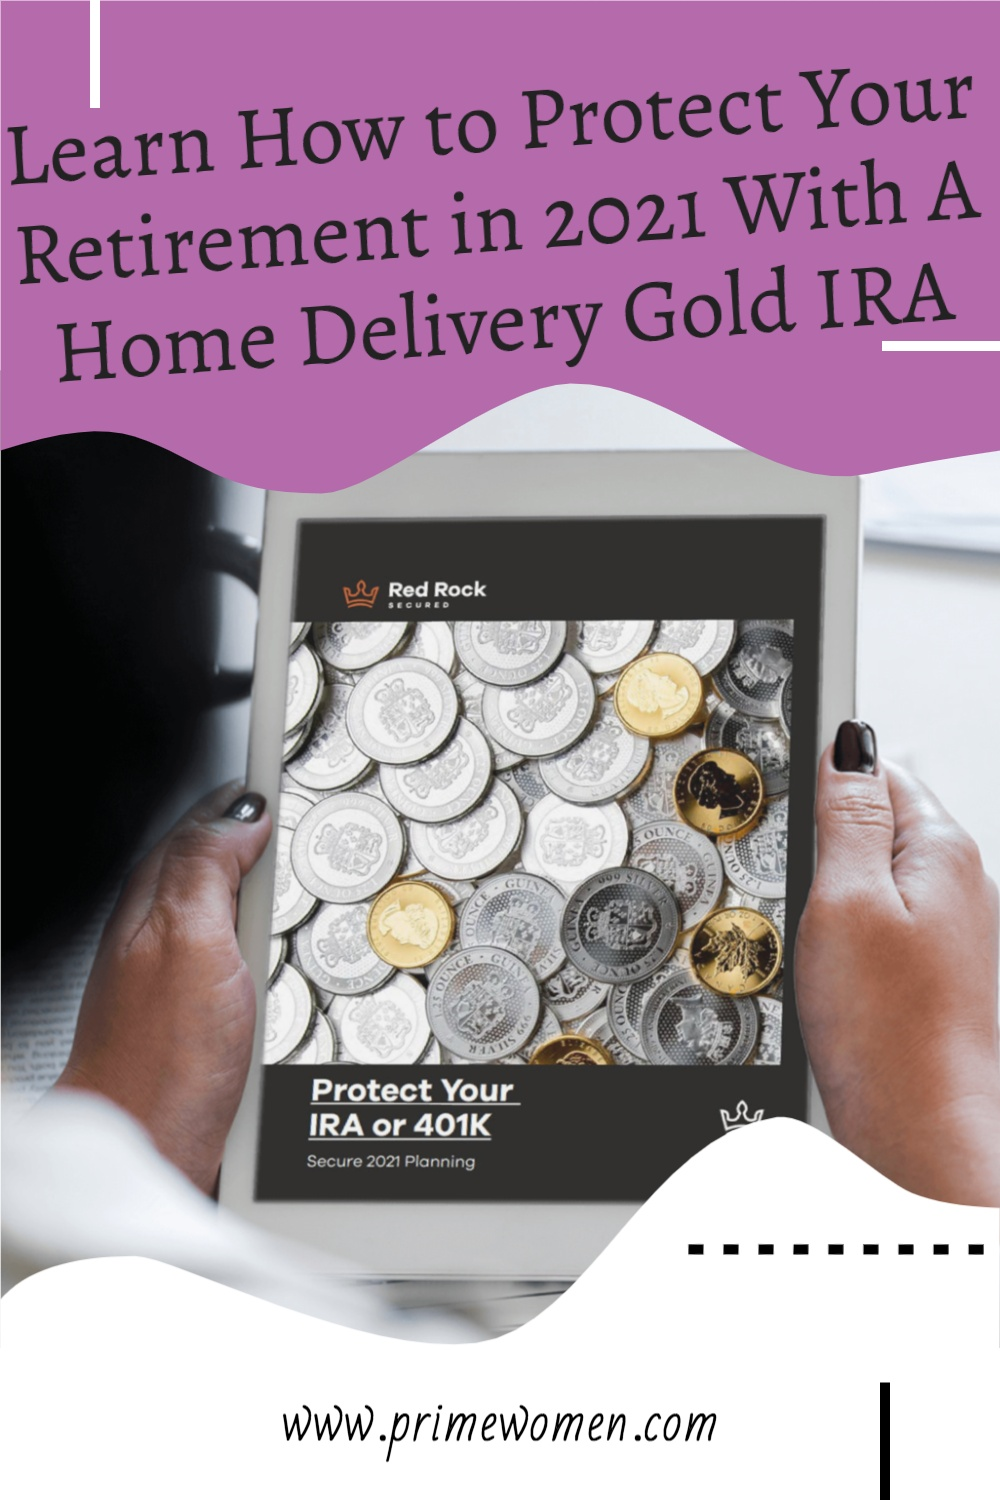 Learn-How-to-Protect-Your-Retirement-in-2021-With-A-Home-Delivery-Gold-IRA